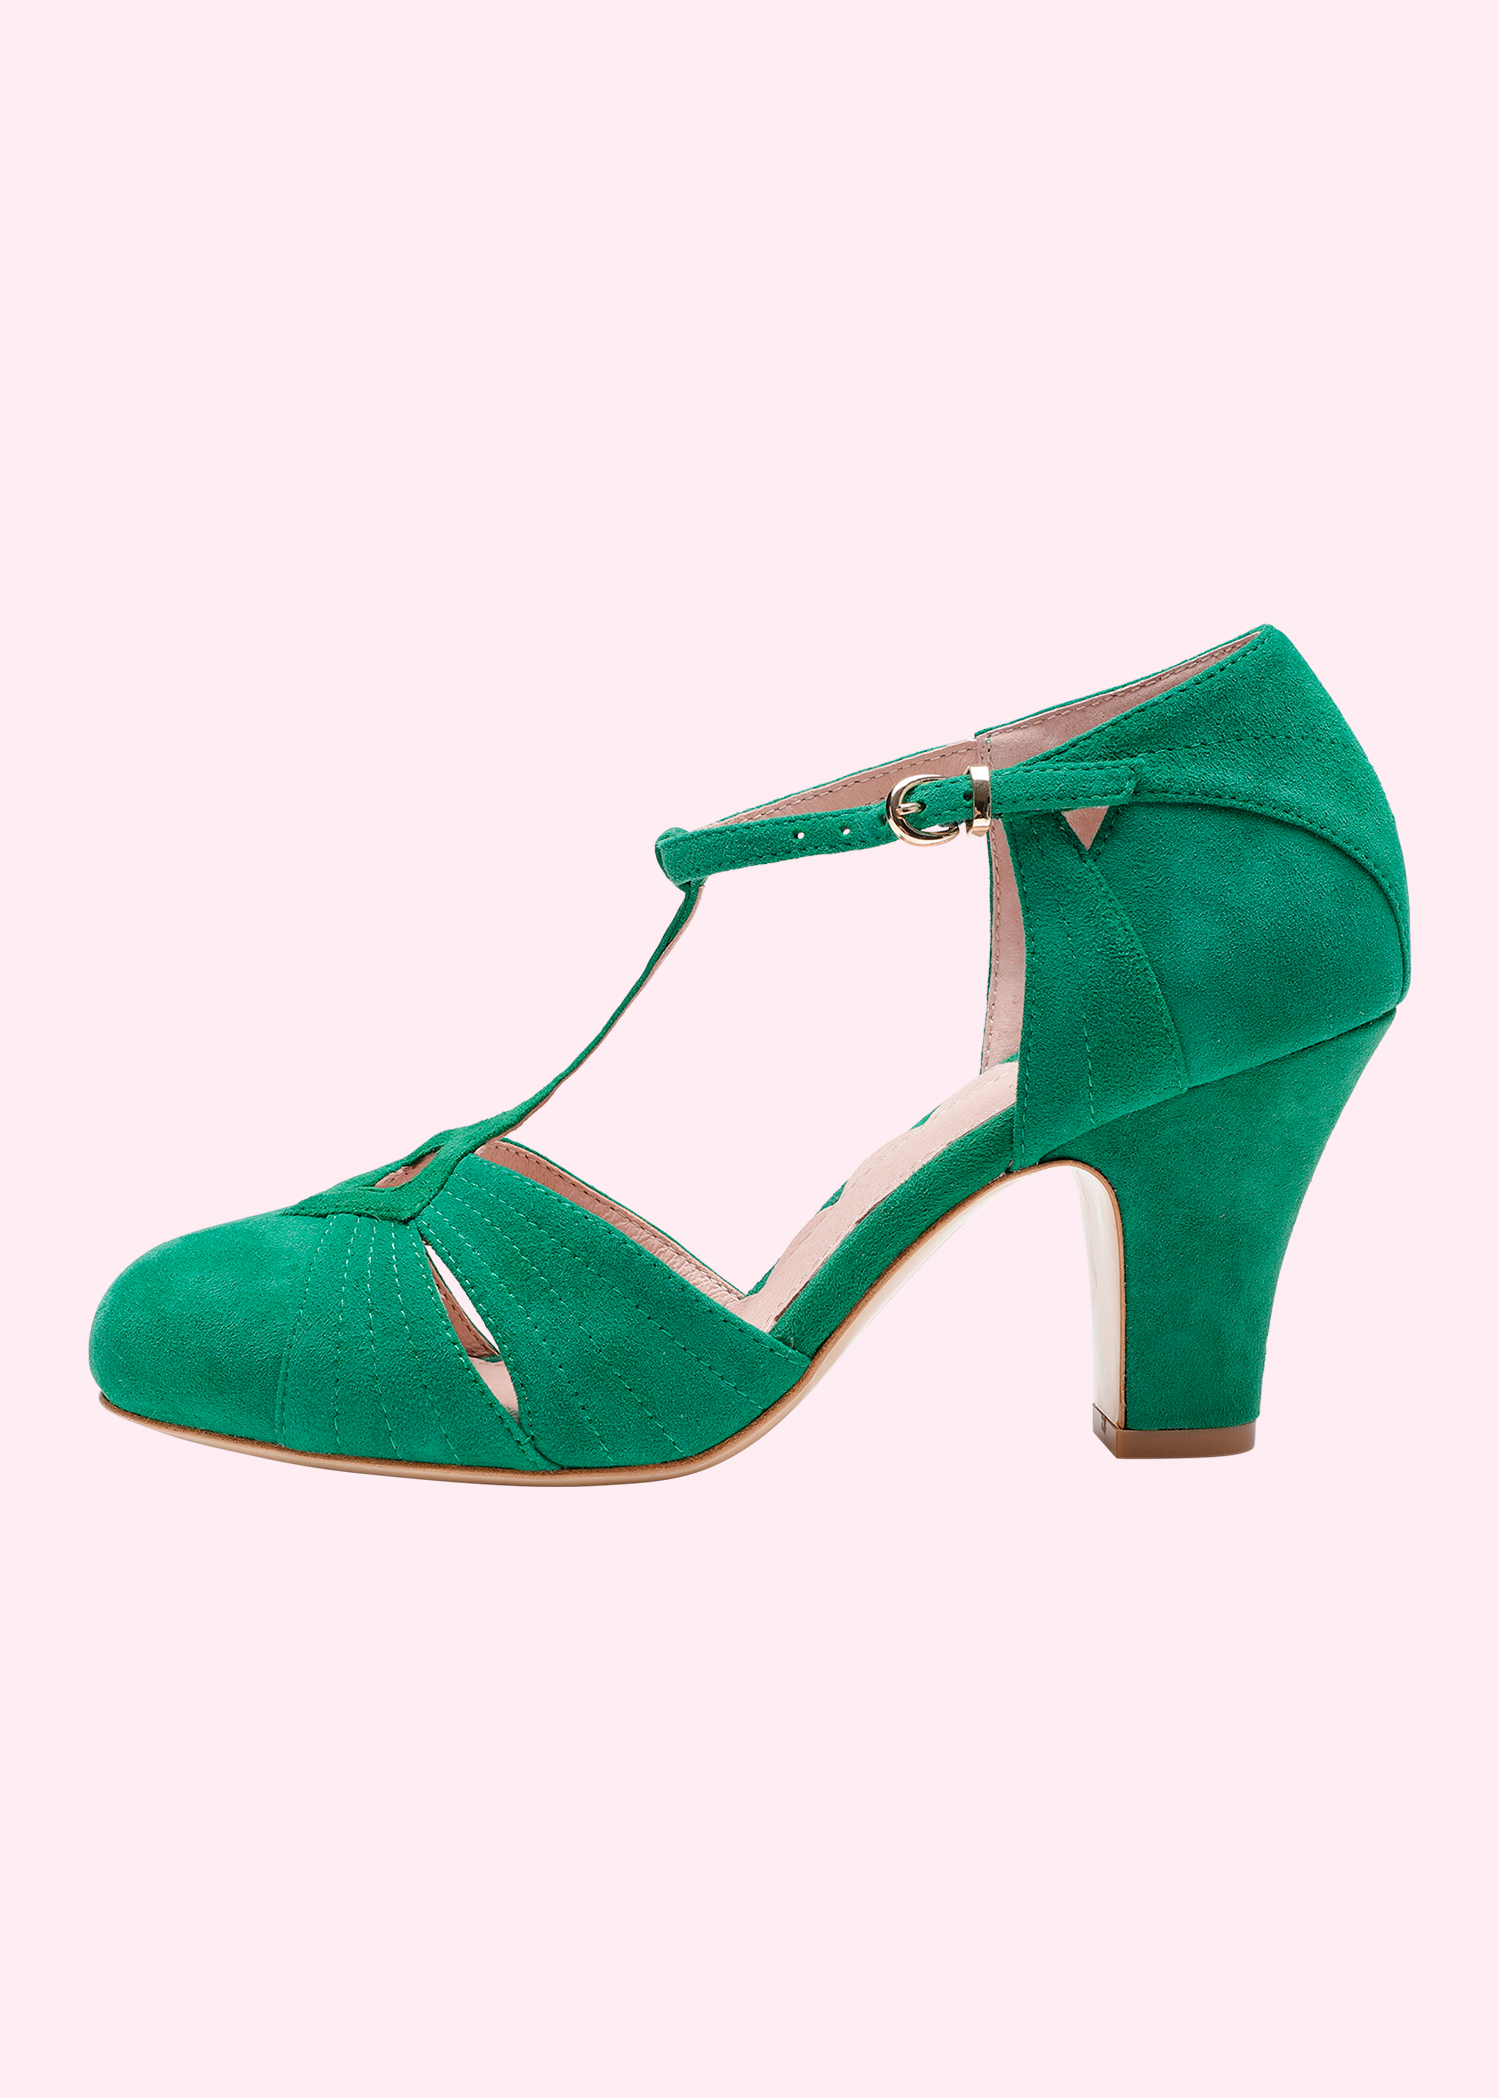 Green vintage Danish shoes in suede from Miss L Fire